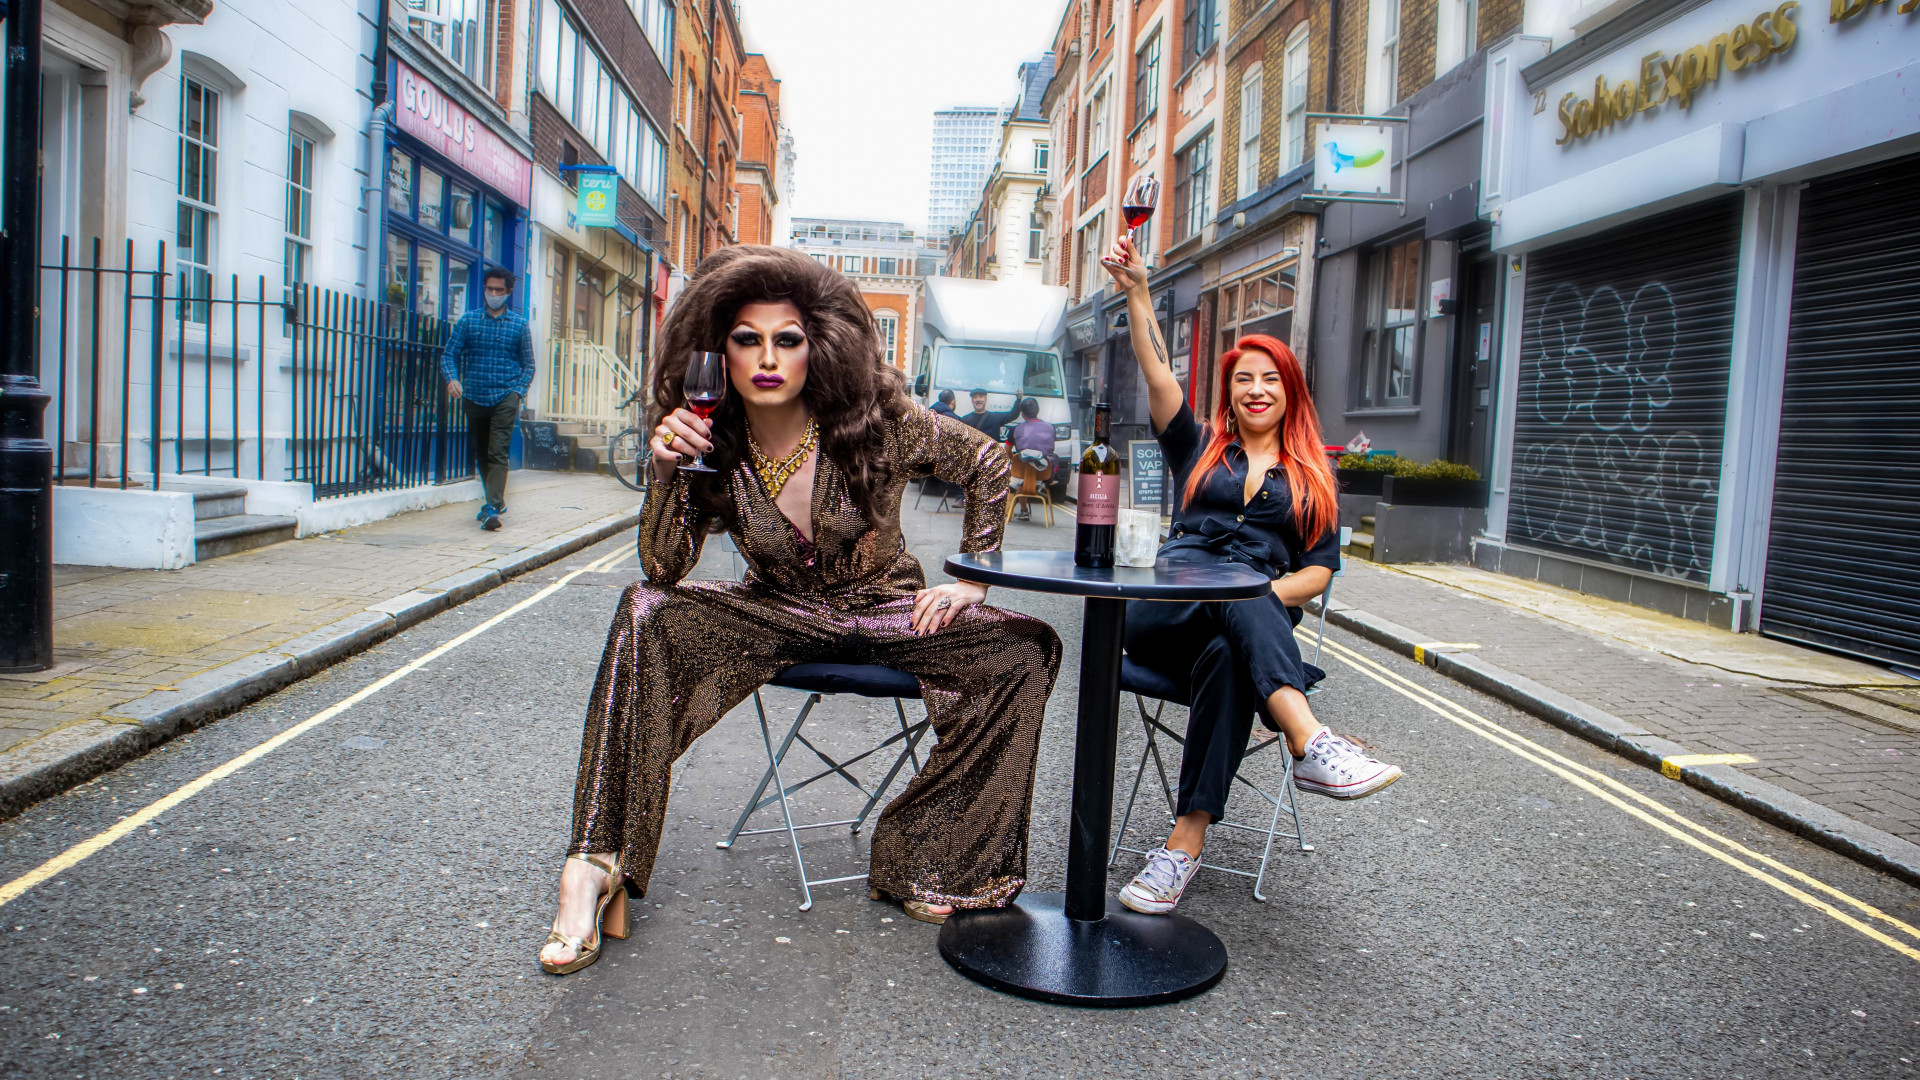 This is a photo of the Drag and Wine night at Golden Gai, Soho, London.